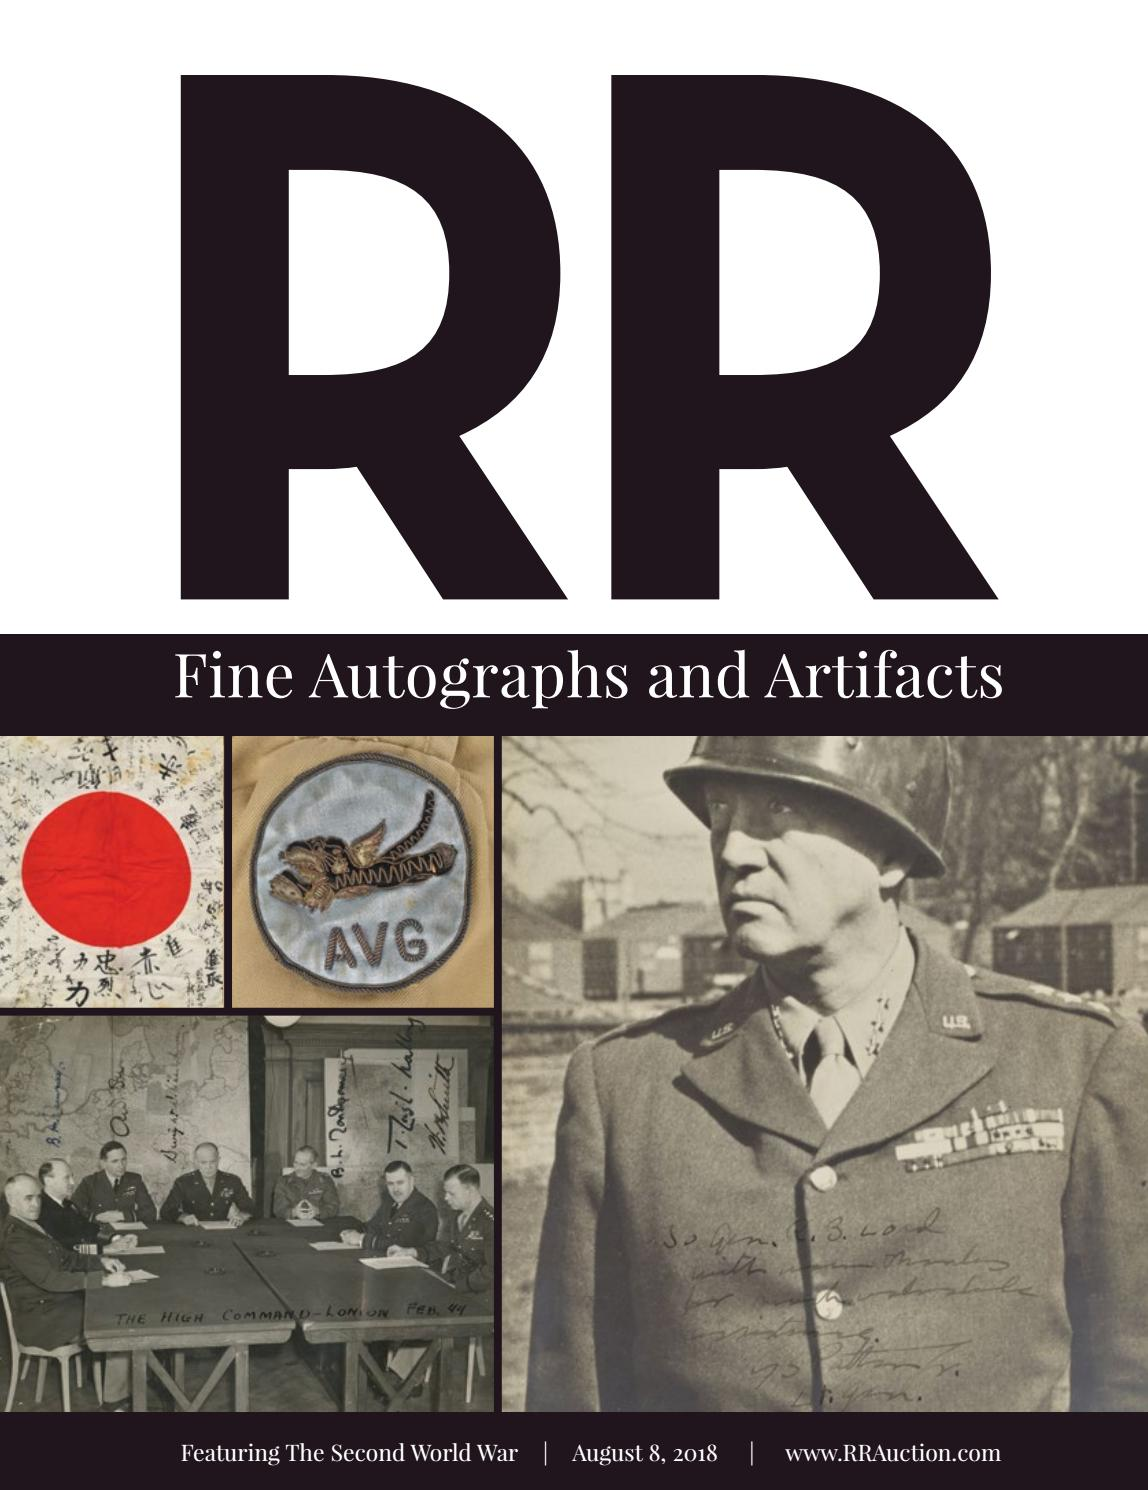 Rr Auction August 2018 Fine Autographs And Artifacts By Rr